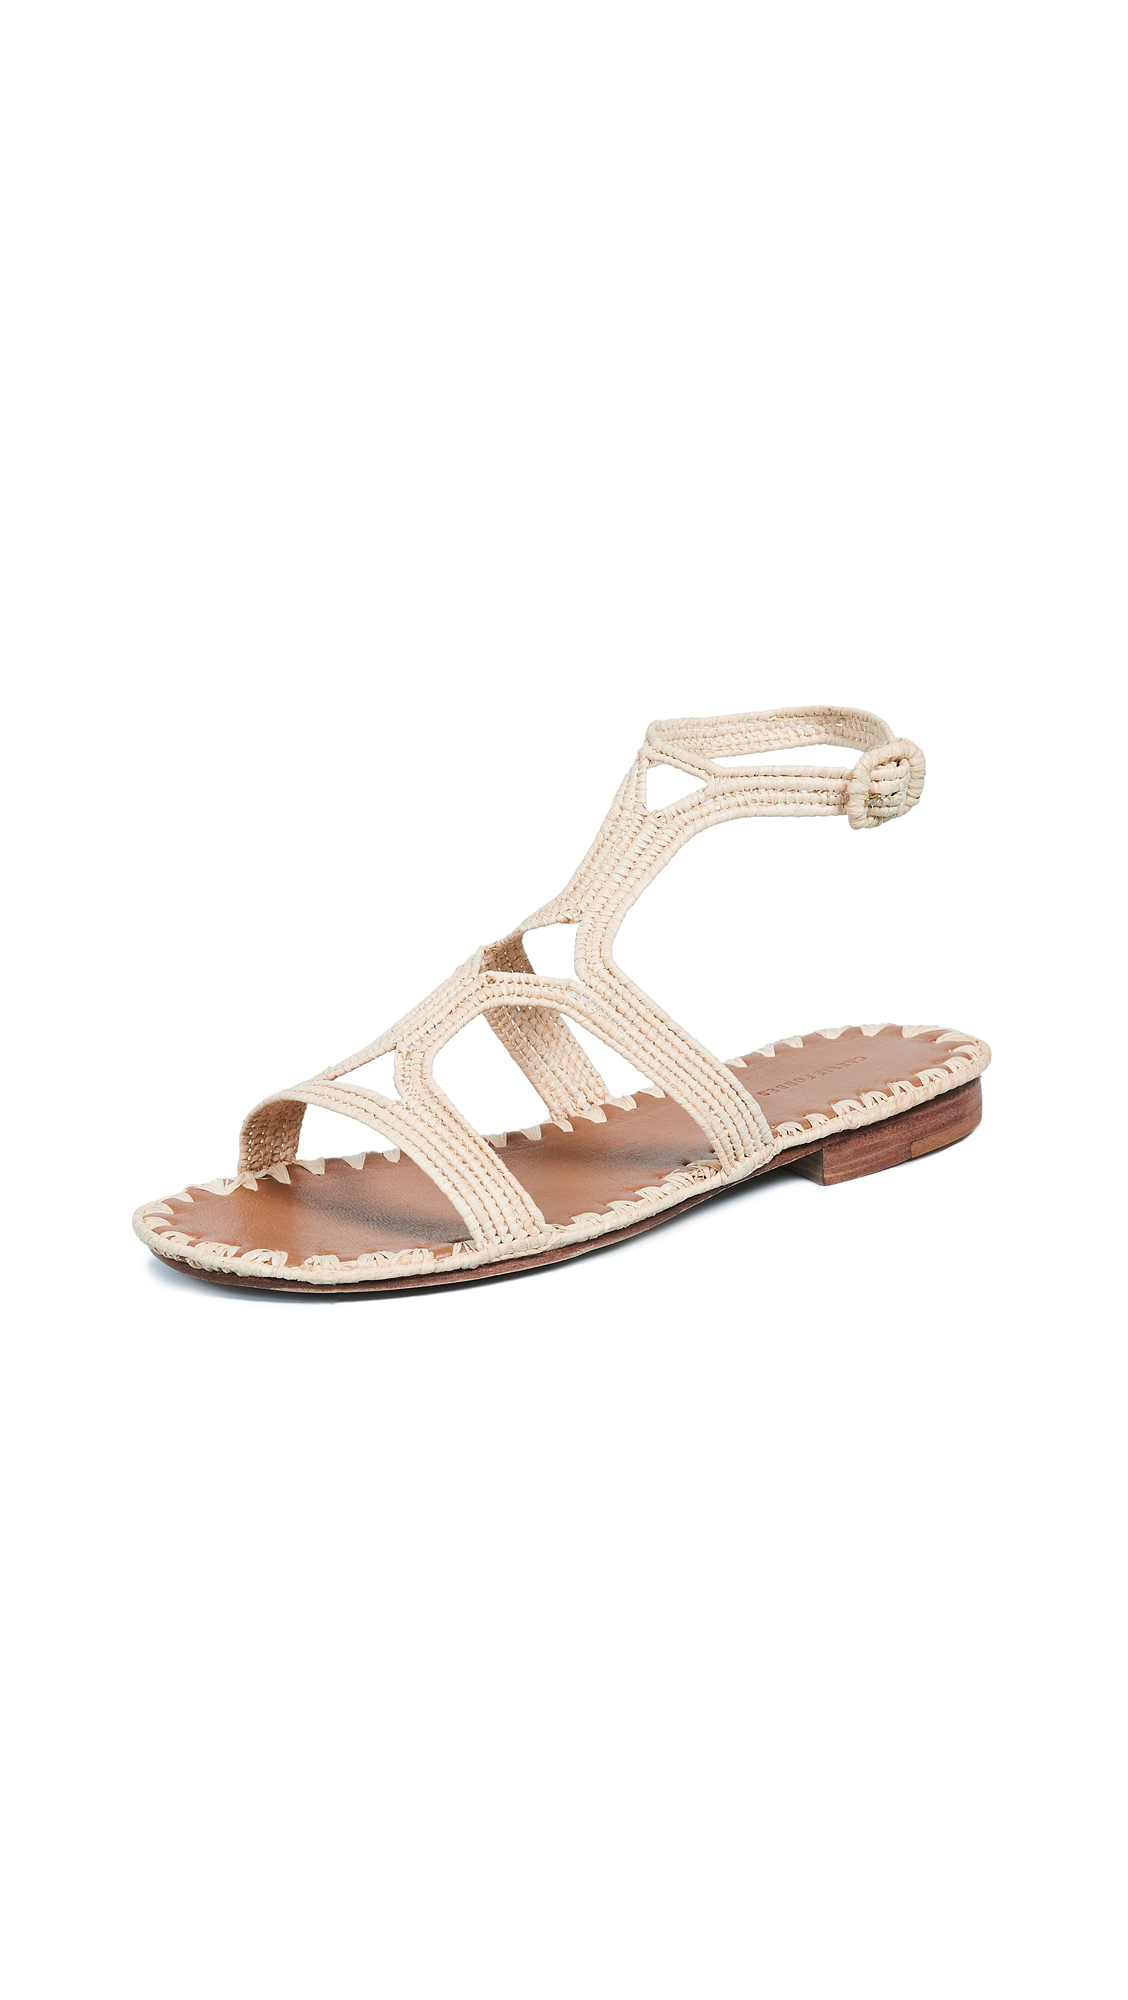 Carrie Forbes Hind Sandals - Natural